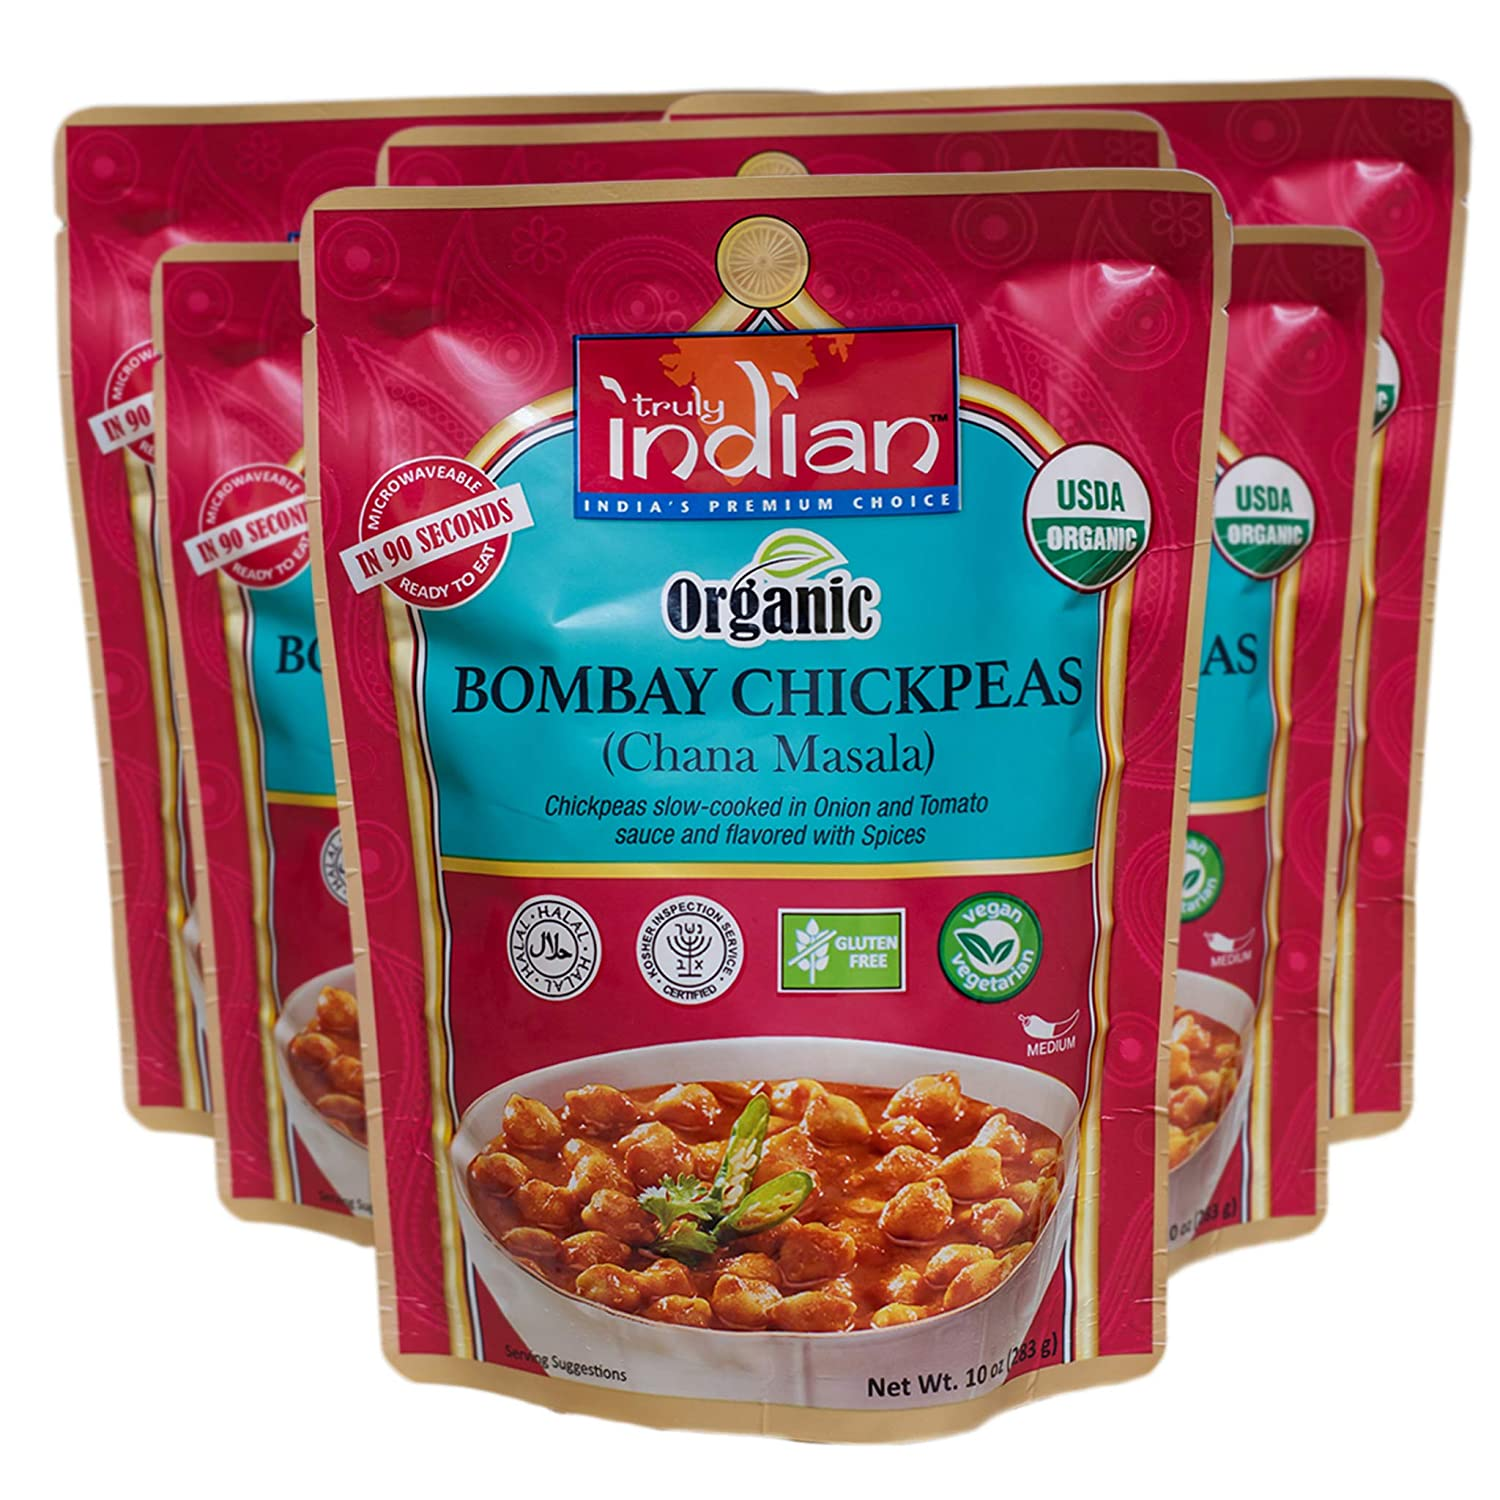 Truly Indian Organic Bombay Chickpeas, Chana Masala, Ready-To-Eat, Bold, Flavorful! Halal, Kosher, Gluten-Free, Vegan and Vegetarian, 6 pack